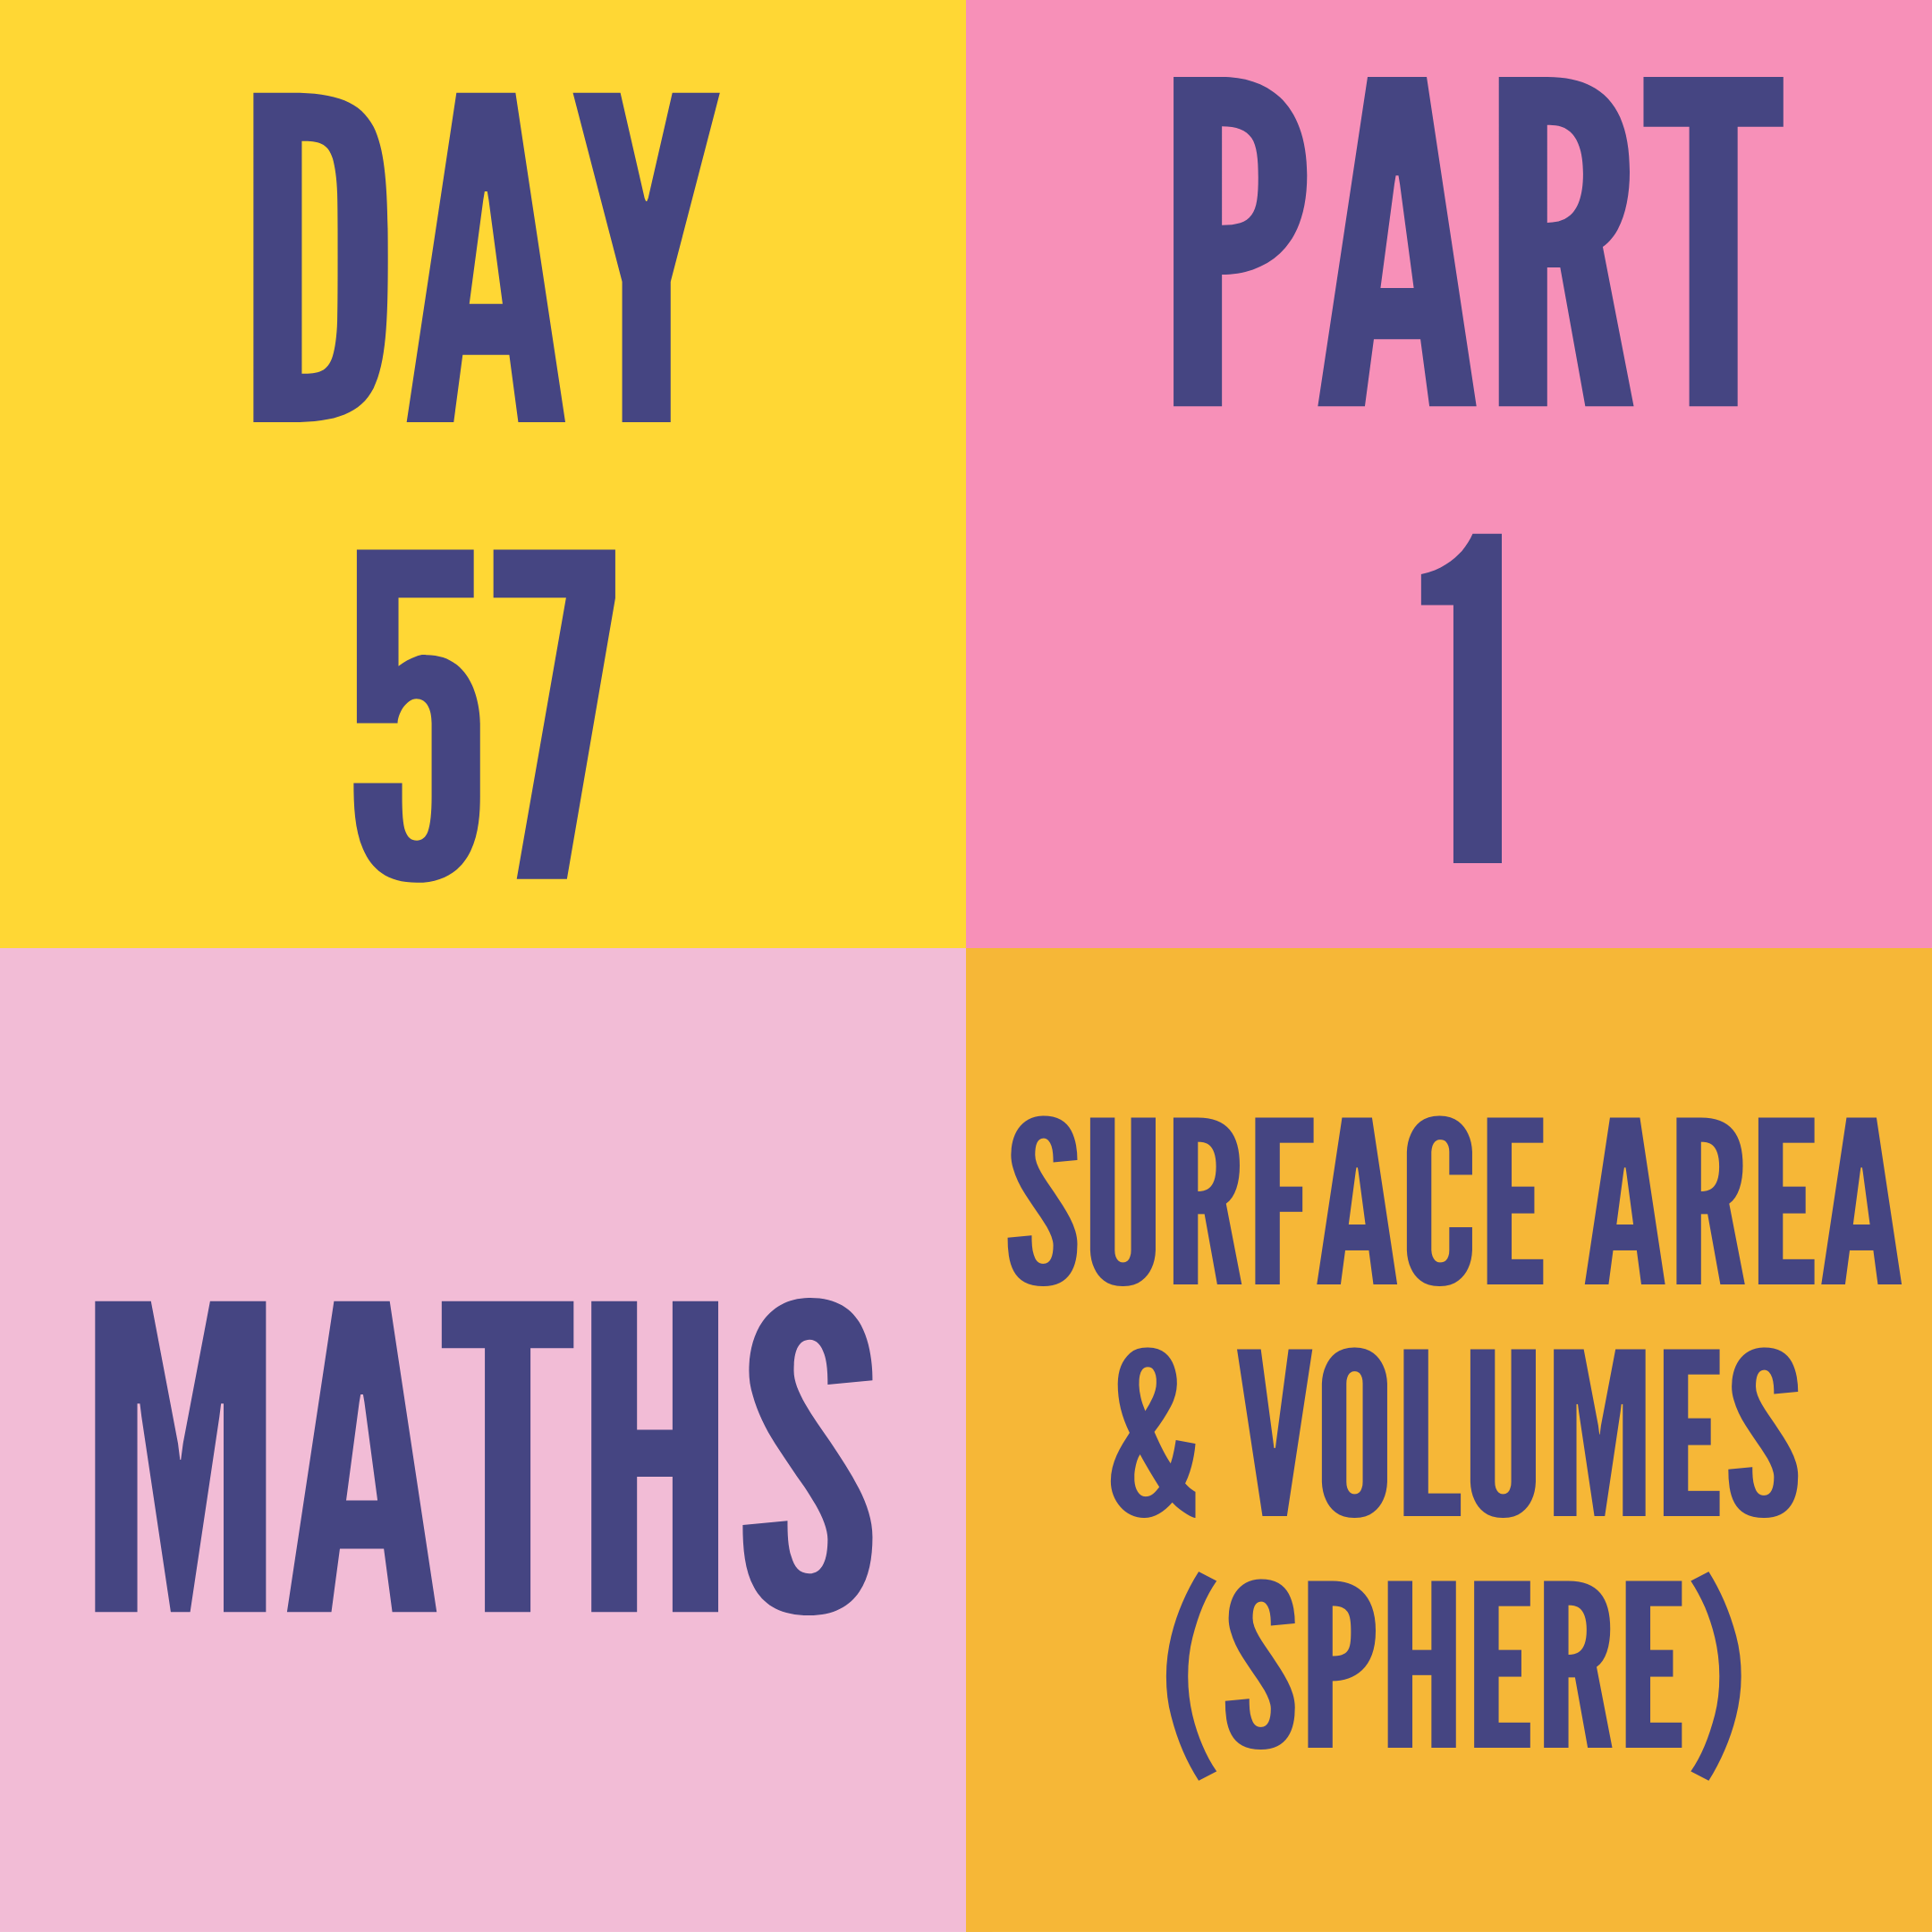 DAY-57 PART-1 SURFACE AREA & VOLUMES (SPHERE)